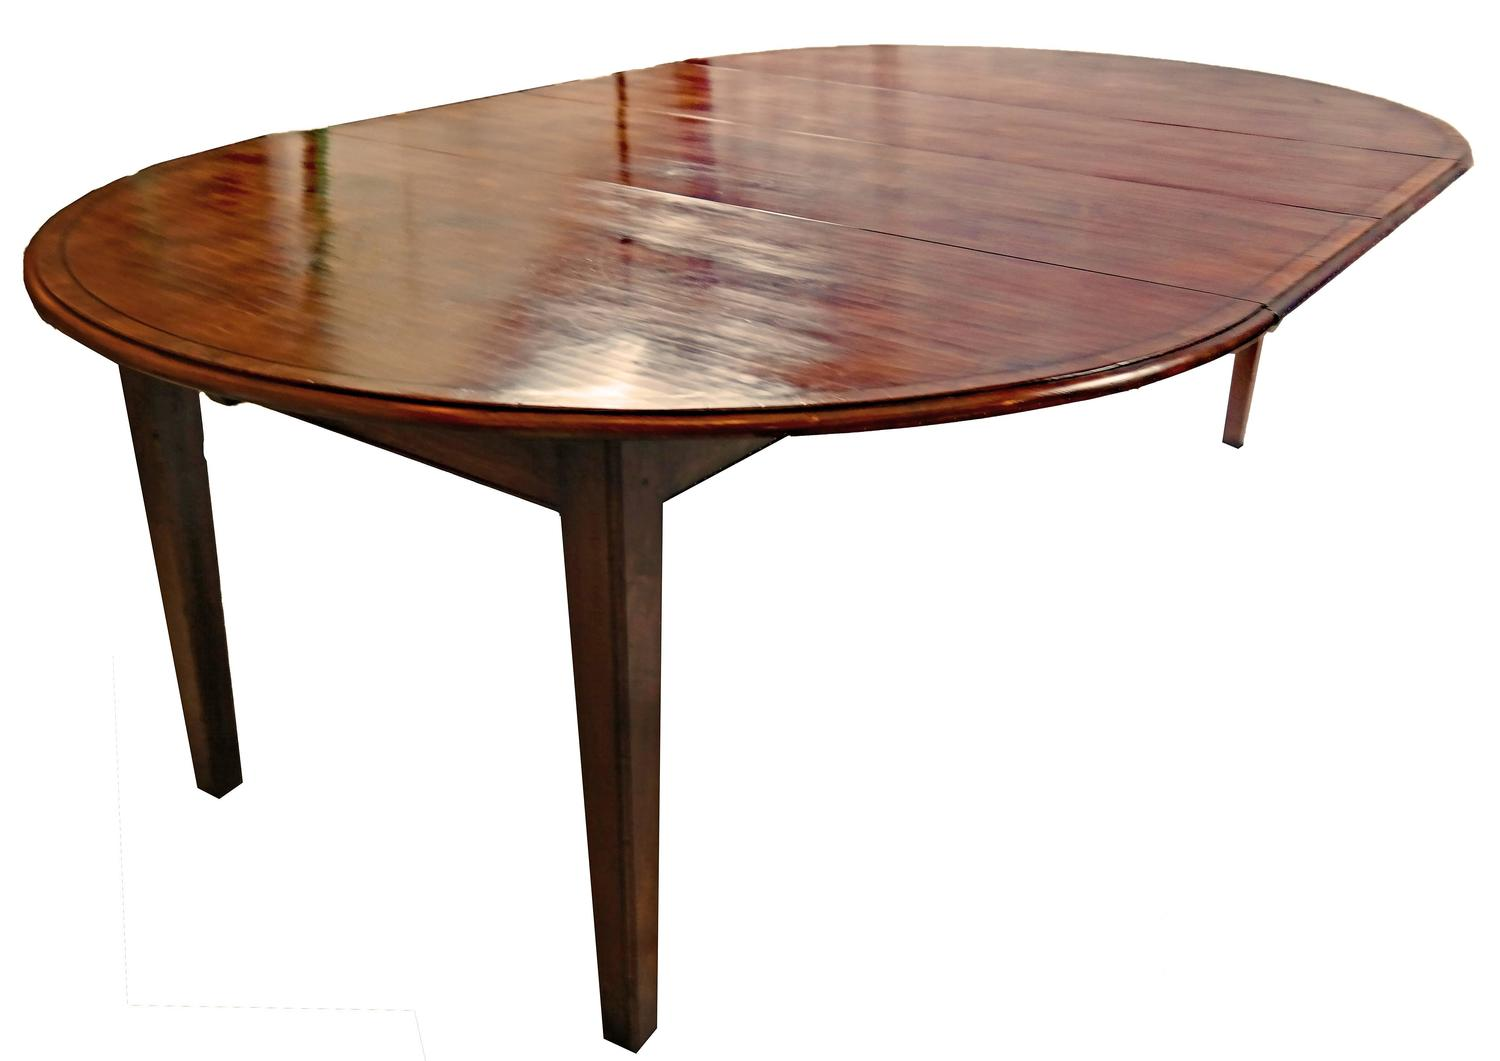 round cherry yewwood banded dining table for sale at 1stdibs. Black Bedroom Furniture Sets. Home Design Ideas